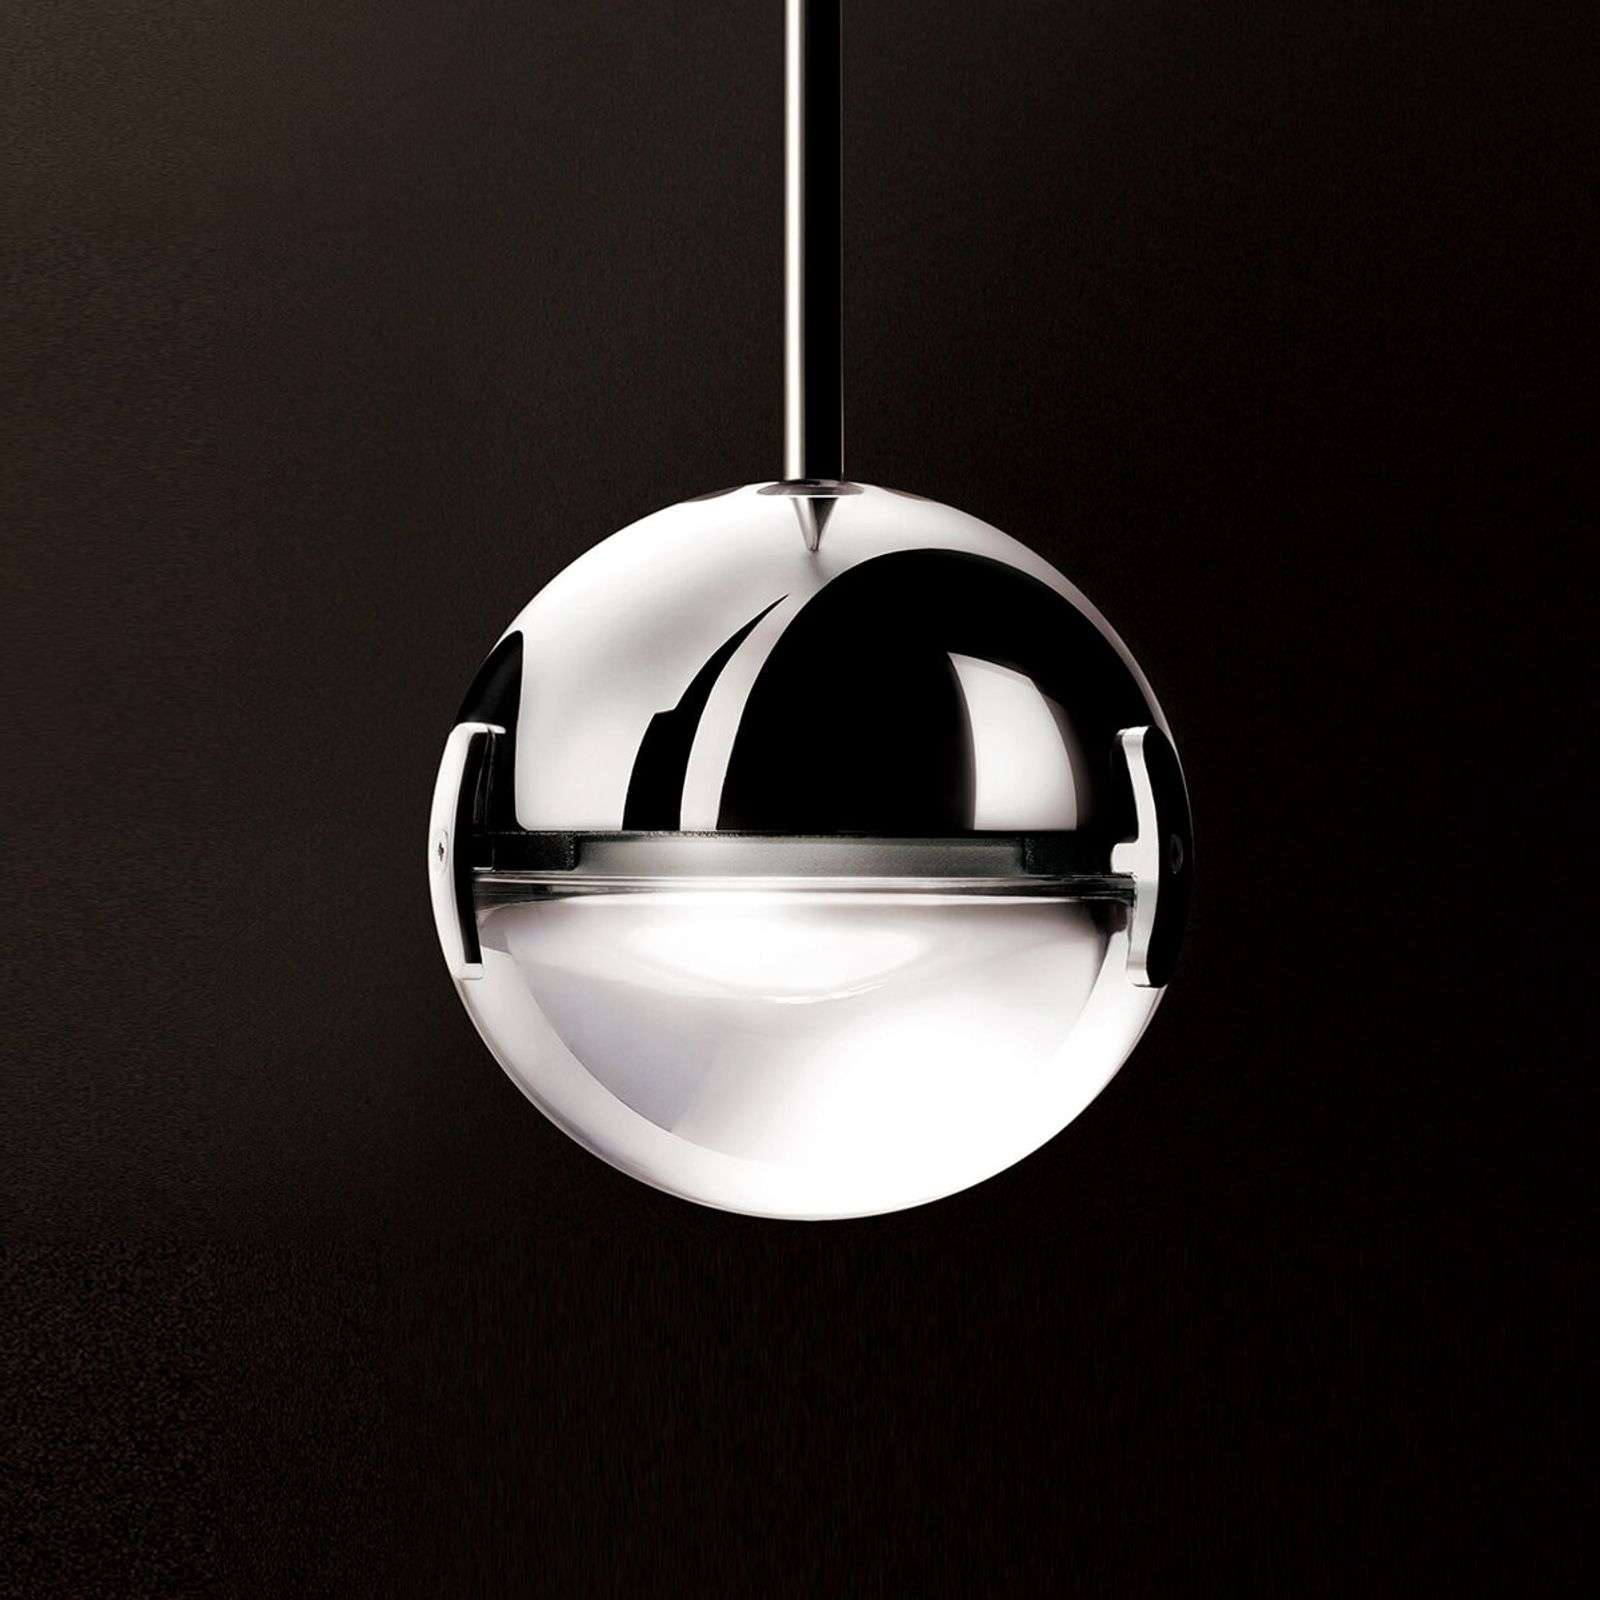 Suspension LED Convivio, satinée